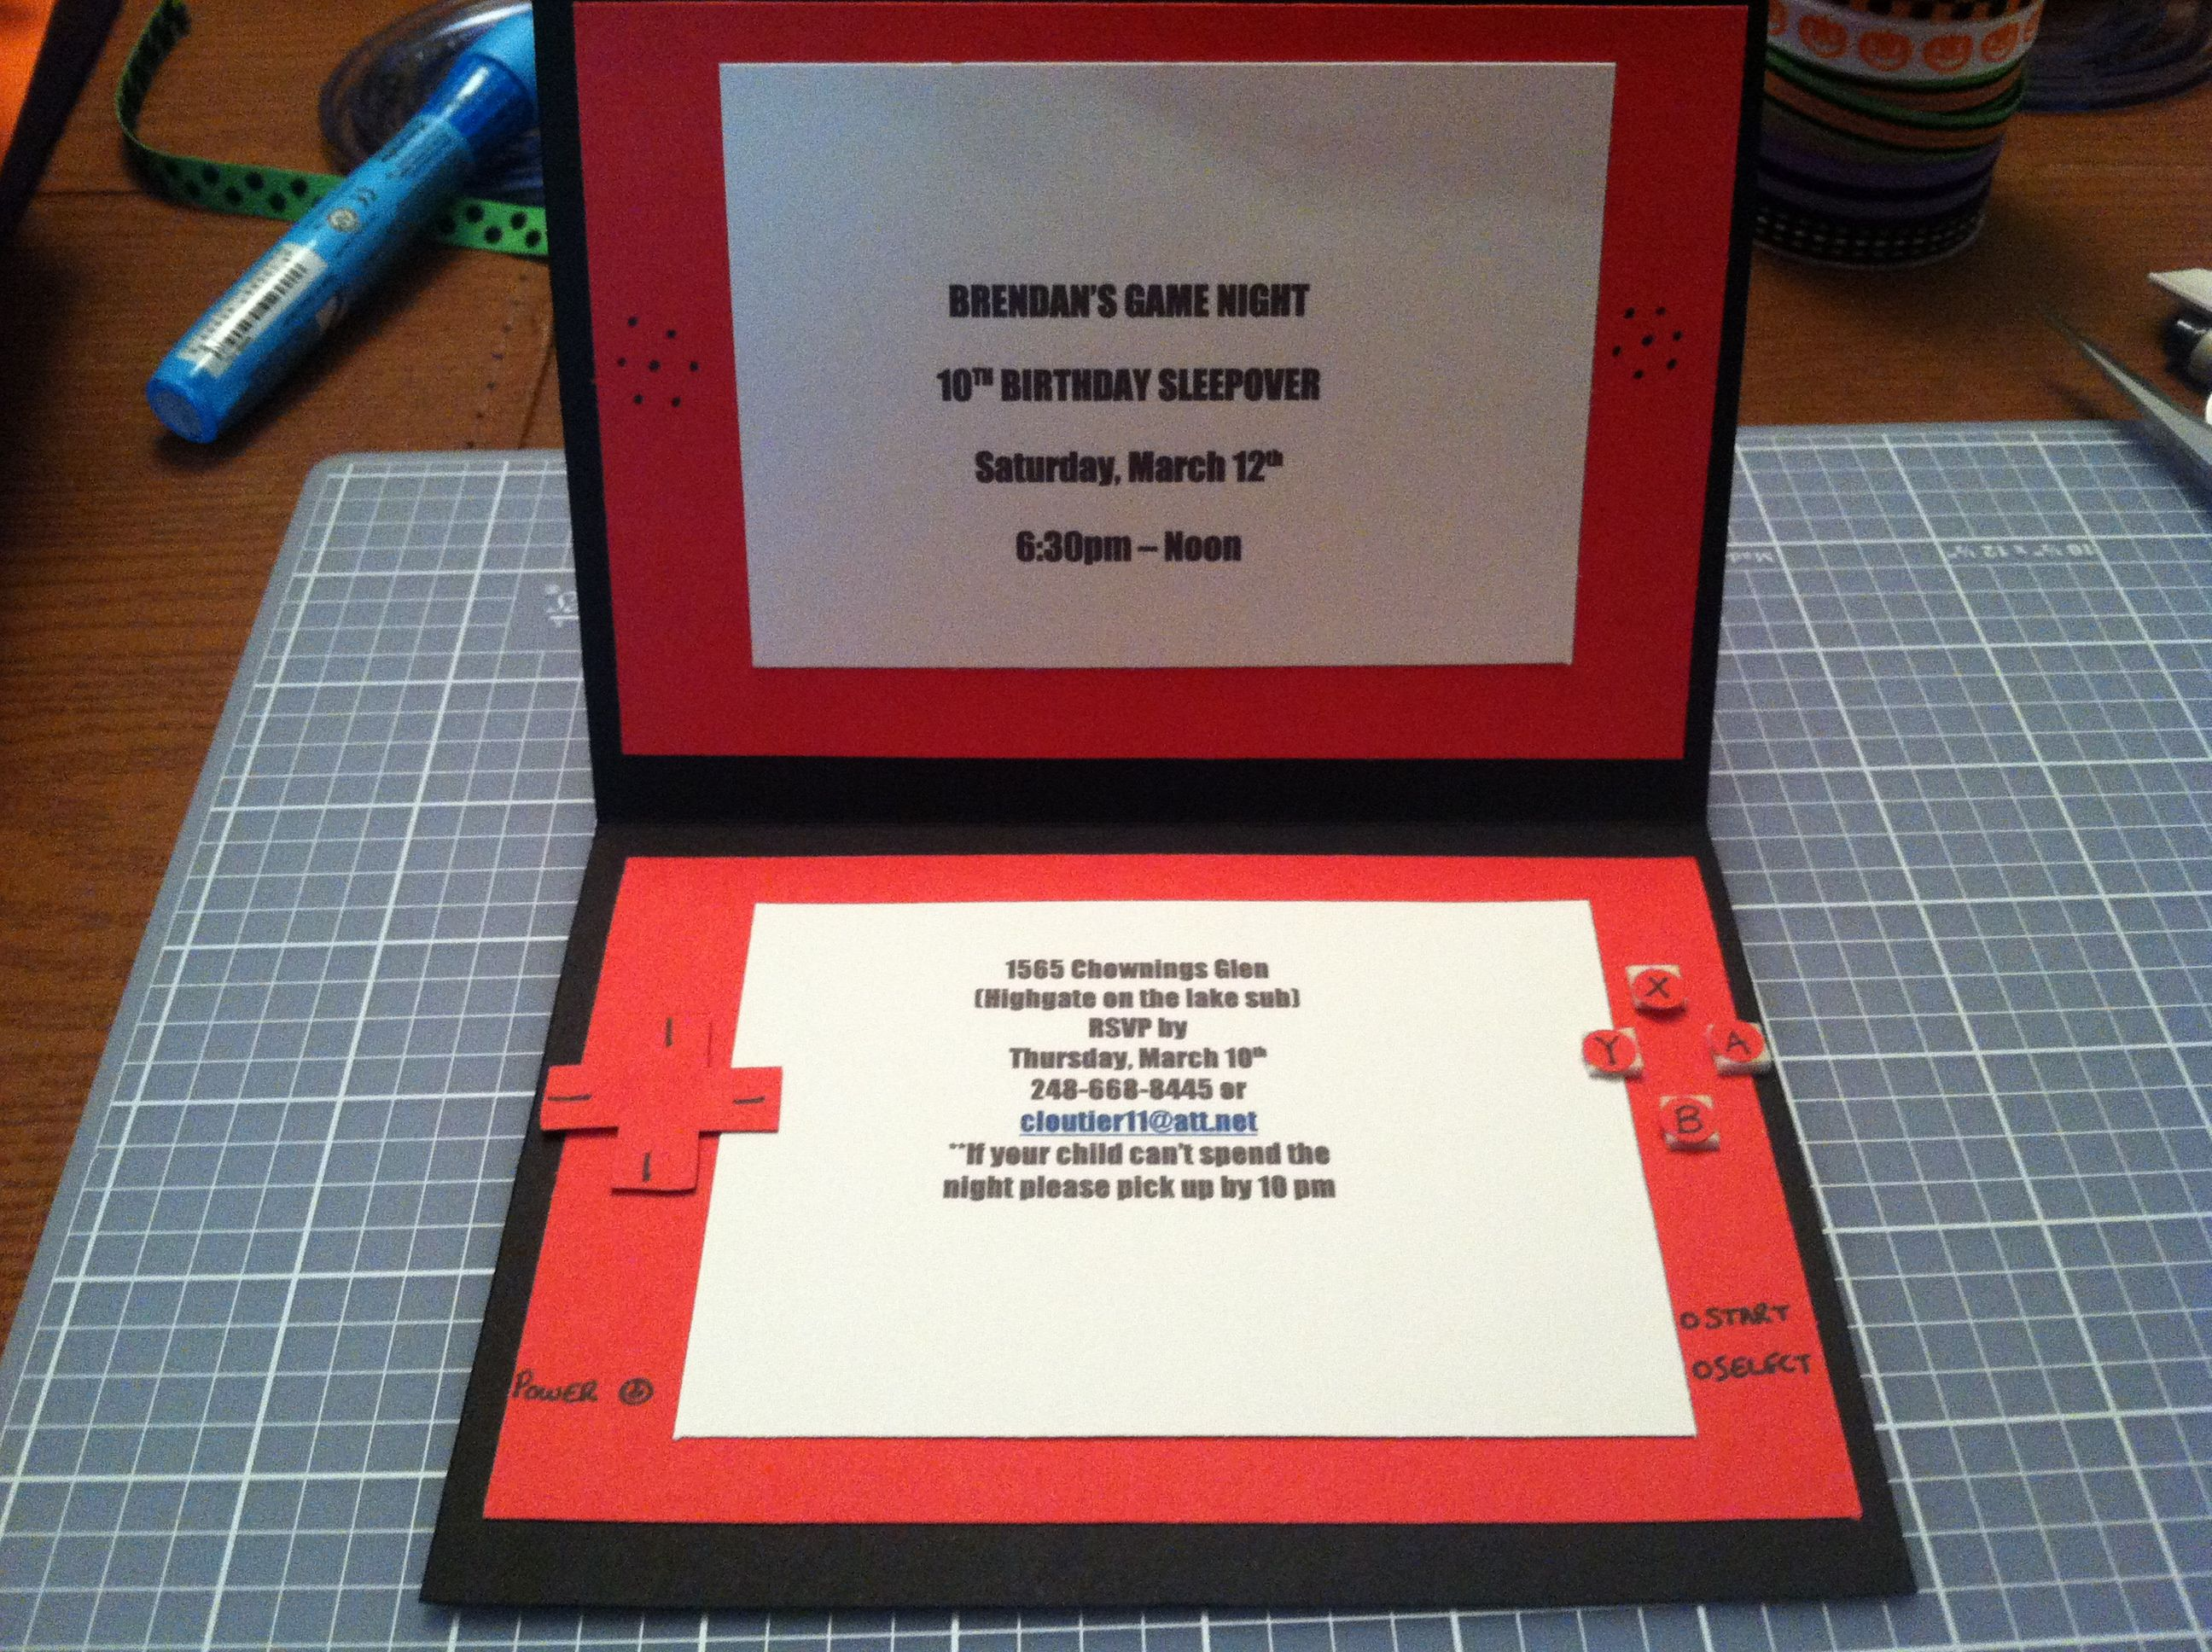 Video Game Party | Invitations by Low | Pinterest | Video game party